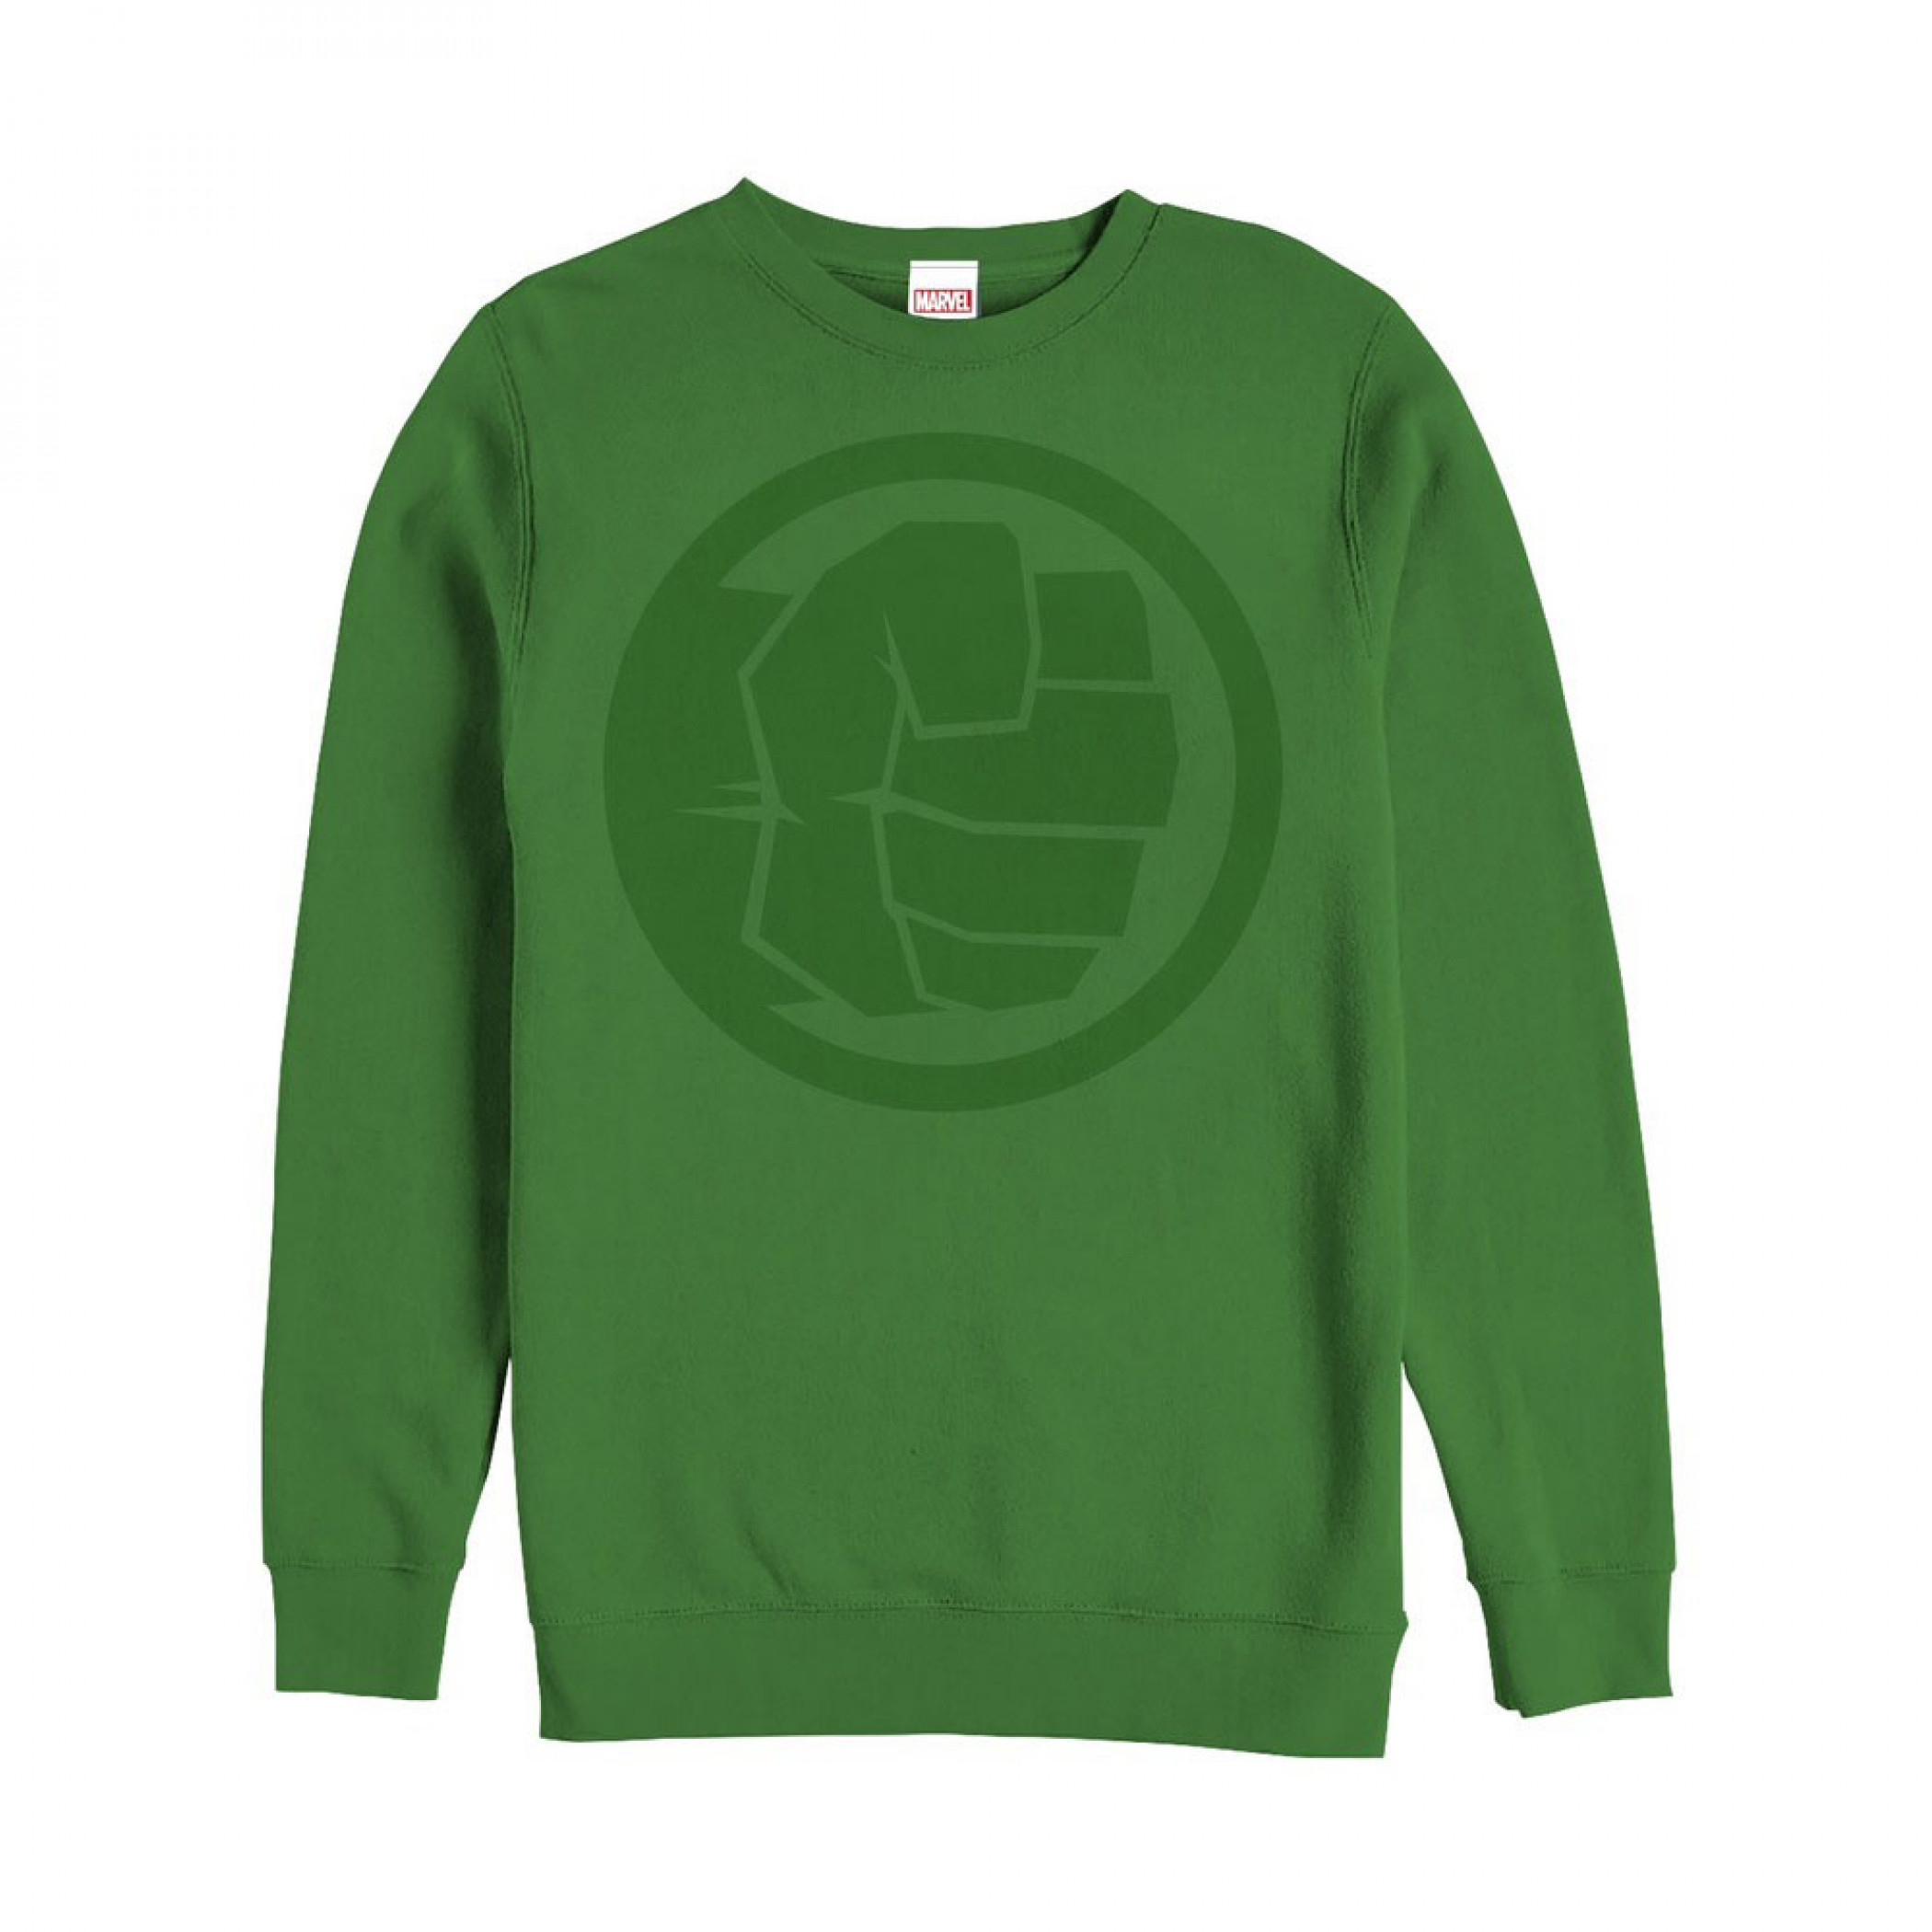 Hulk Fist Logo Green Sweatshirt